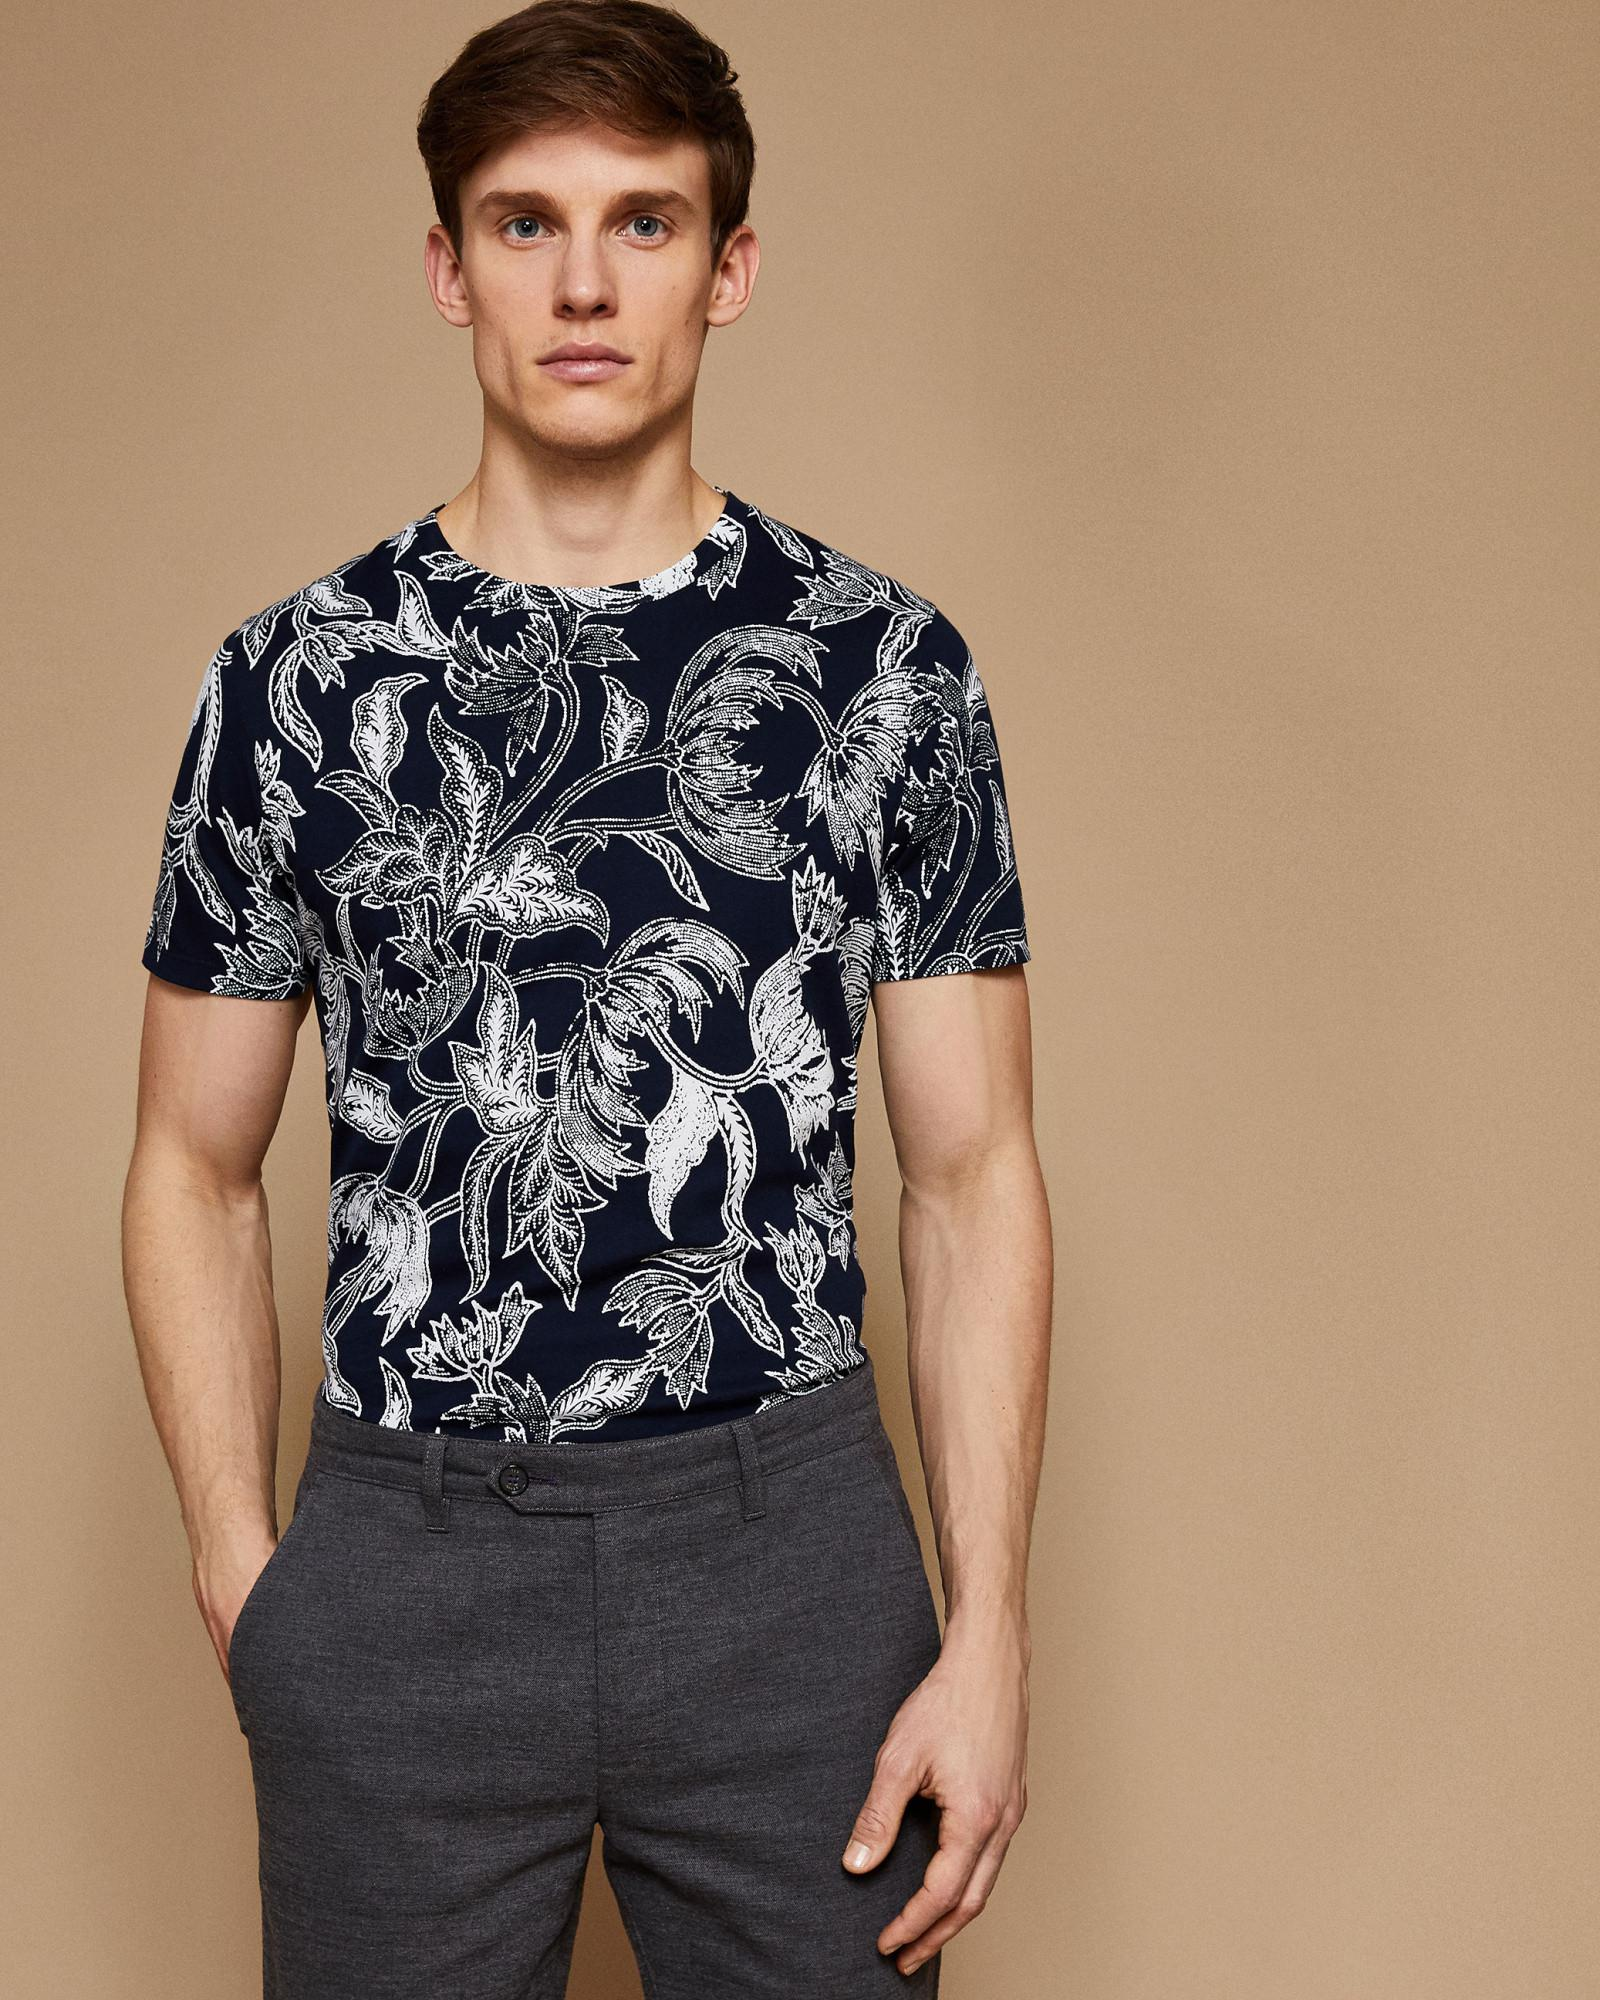 81a401f1a0ea Ted Baker Floral Cotton T-shirt in Blue for Men - Lyst